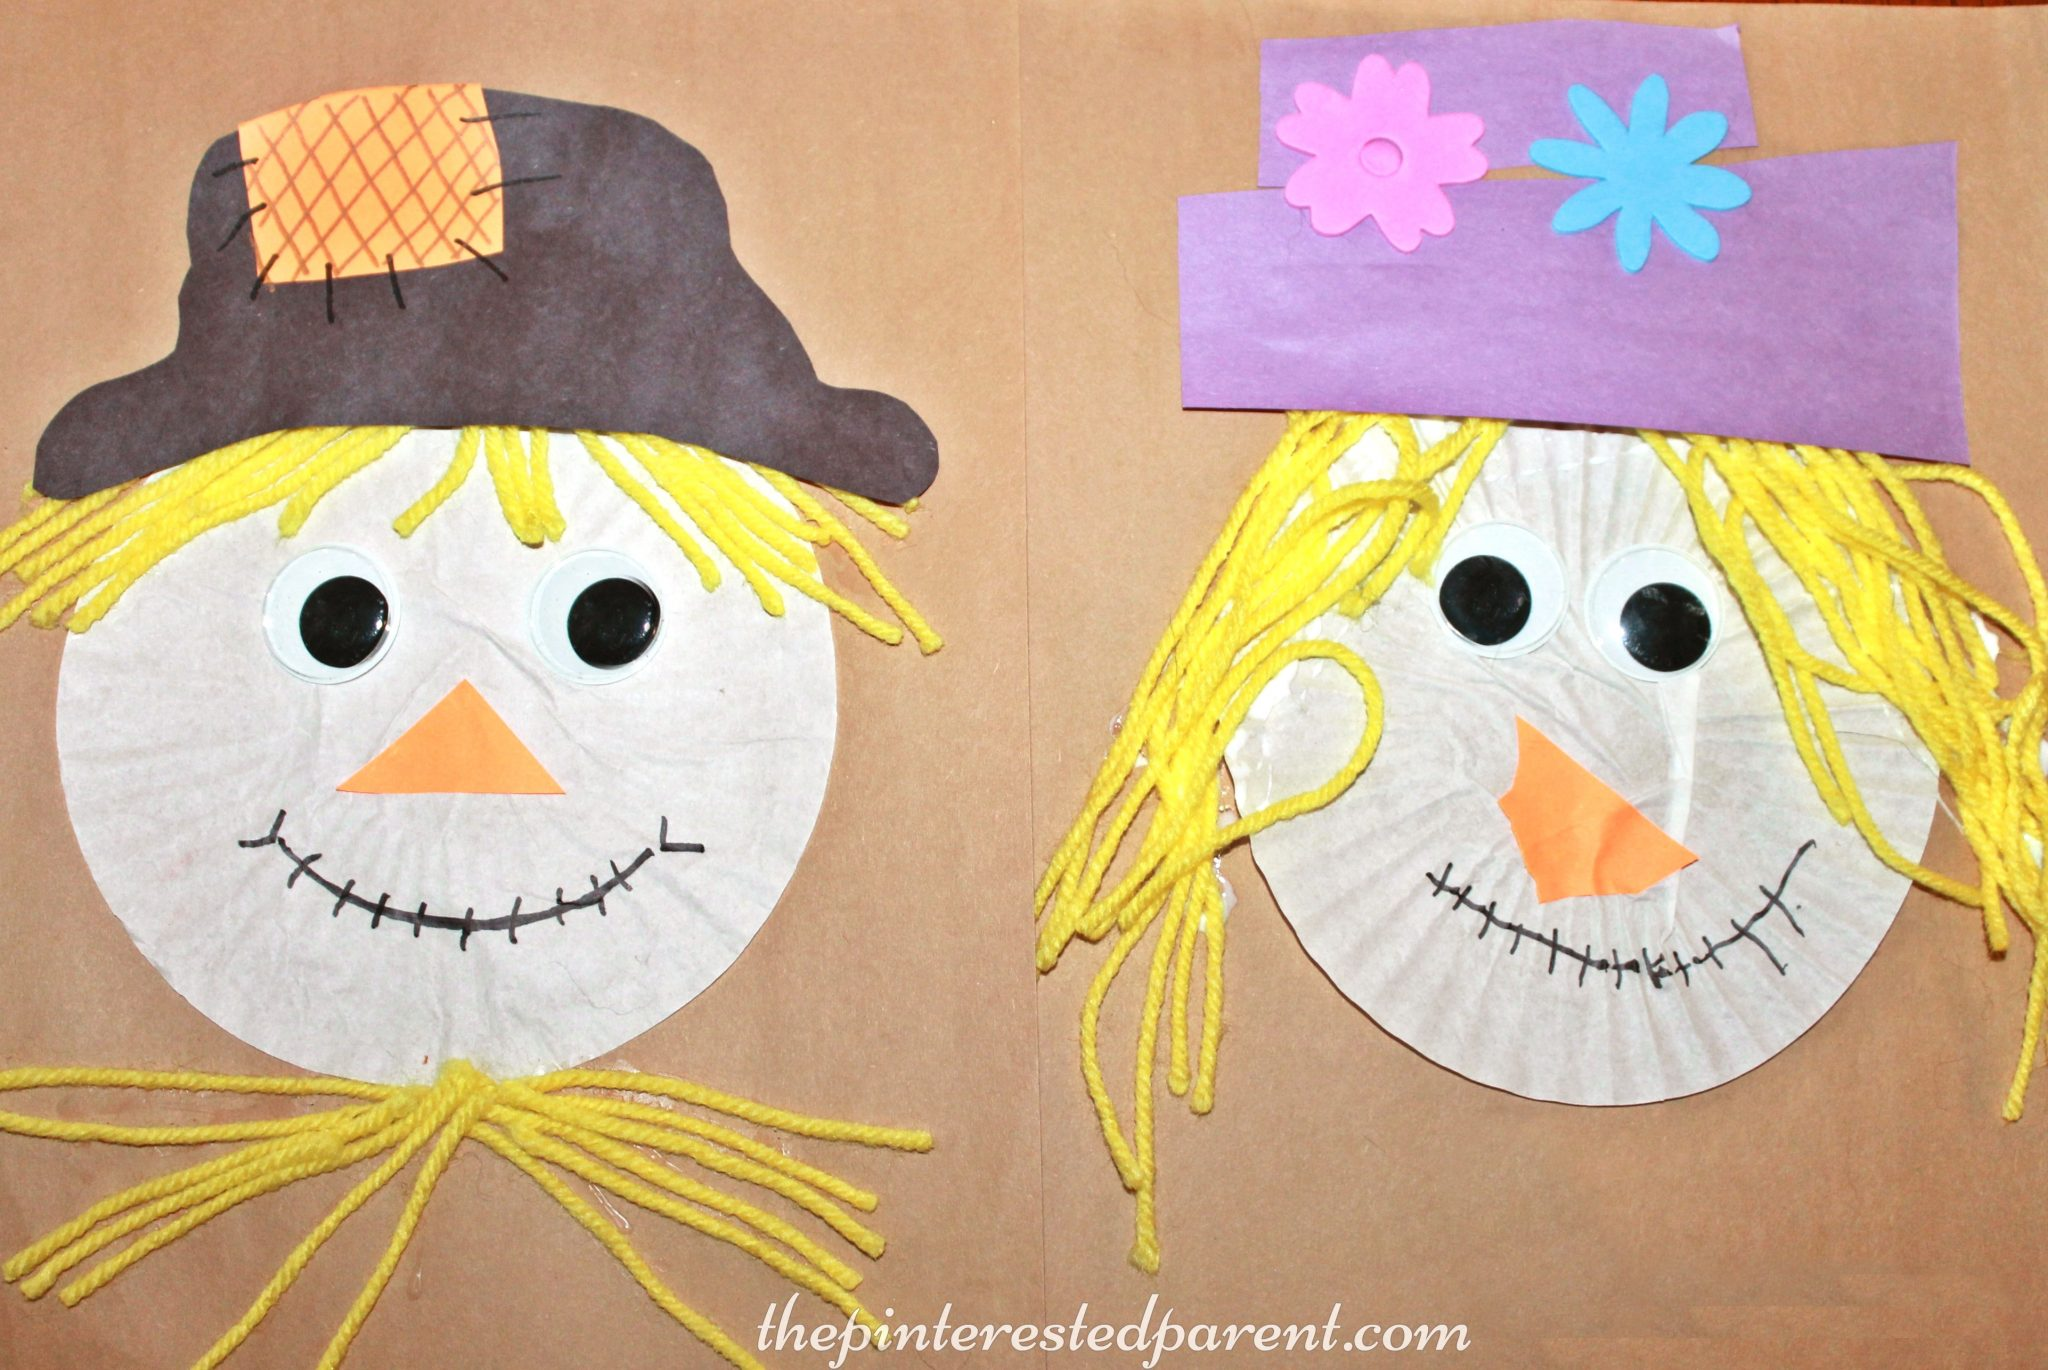 Paper Plate Emotion Masks No Time For Flash Cards & Paper Plate Scarecrow Craft No Time For Flash Cards - induced.info